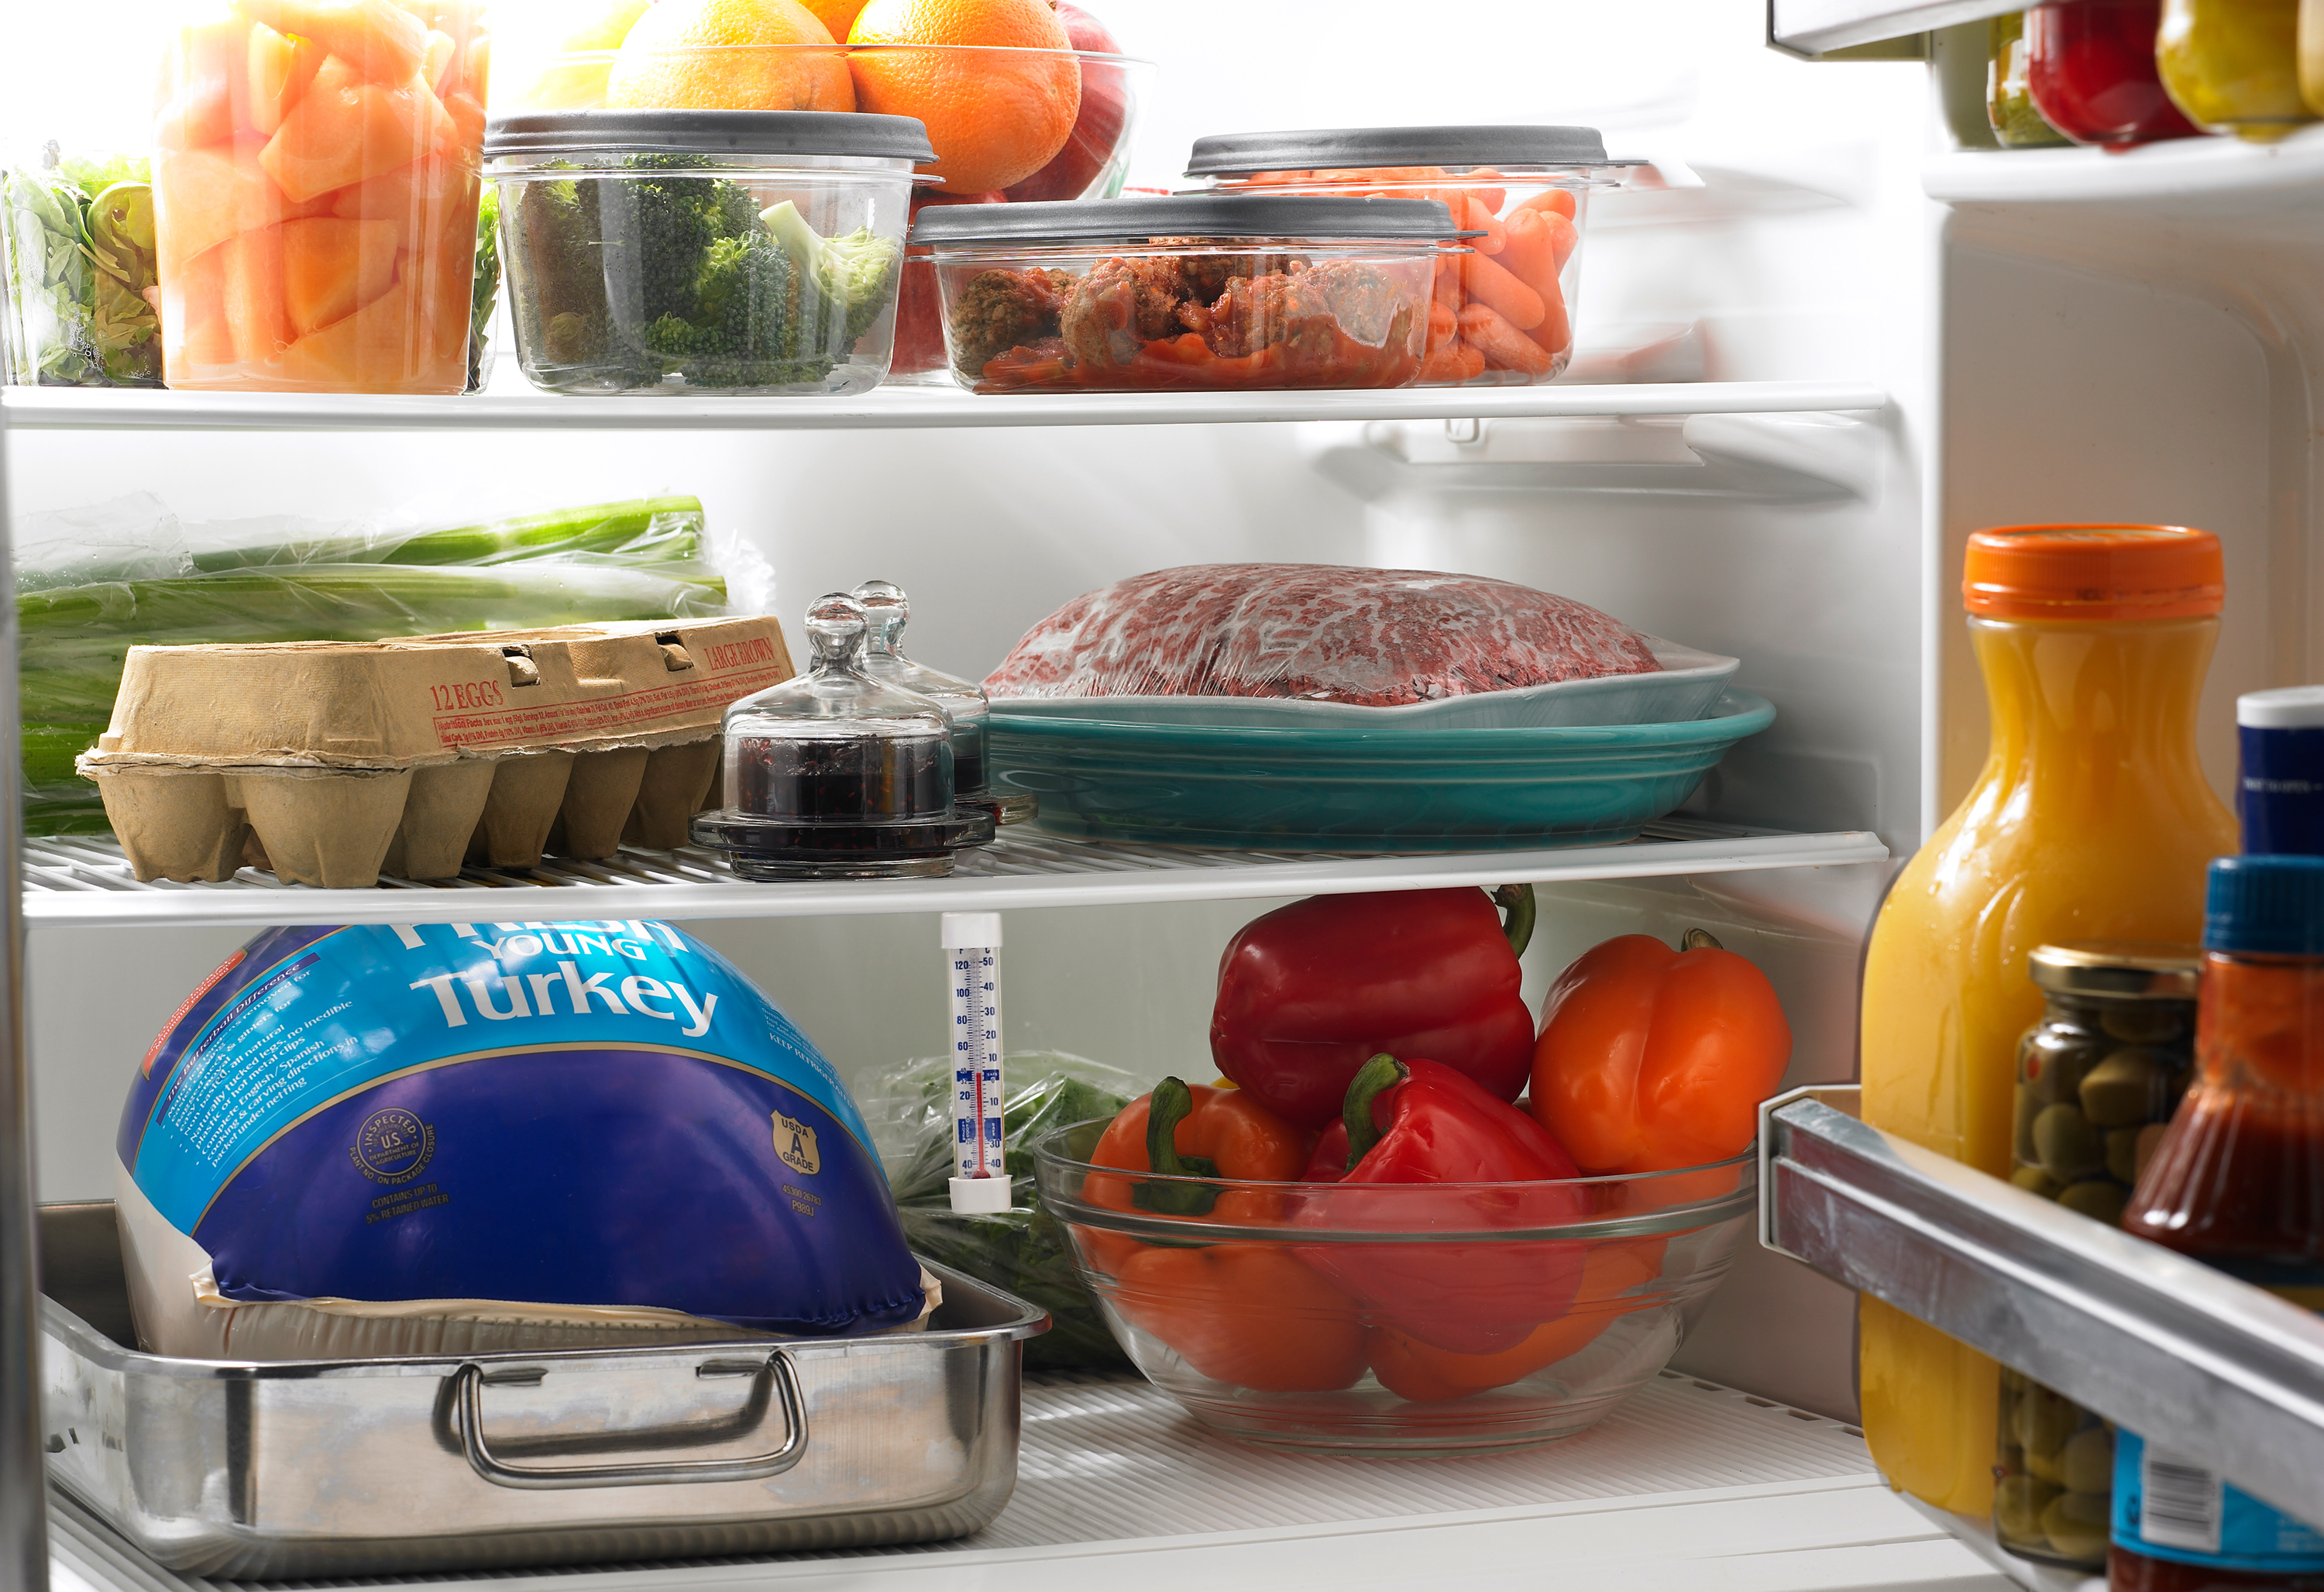 Don't Toss That Sour Milk! And Other Tips To Cut Kitchen Food Waste